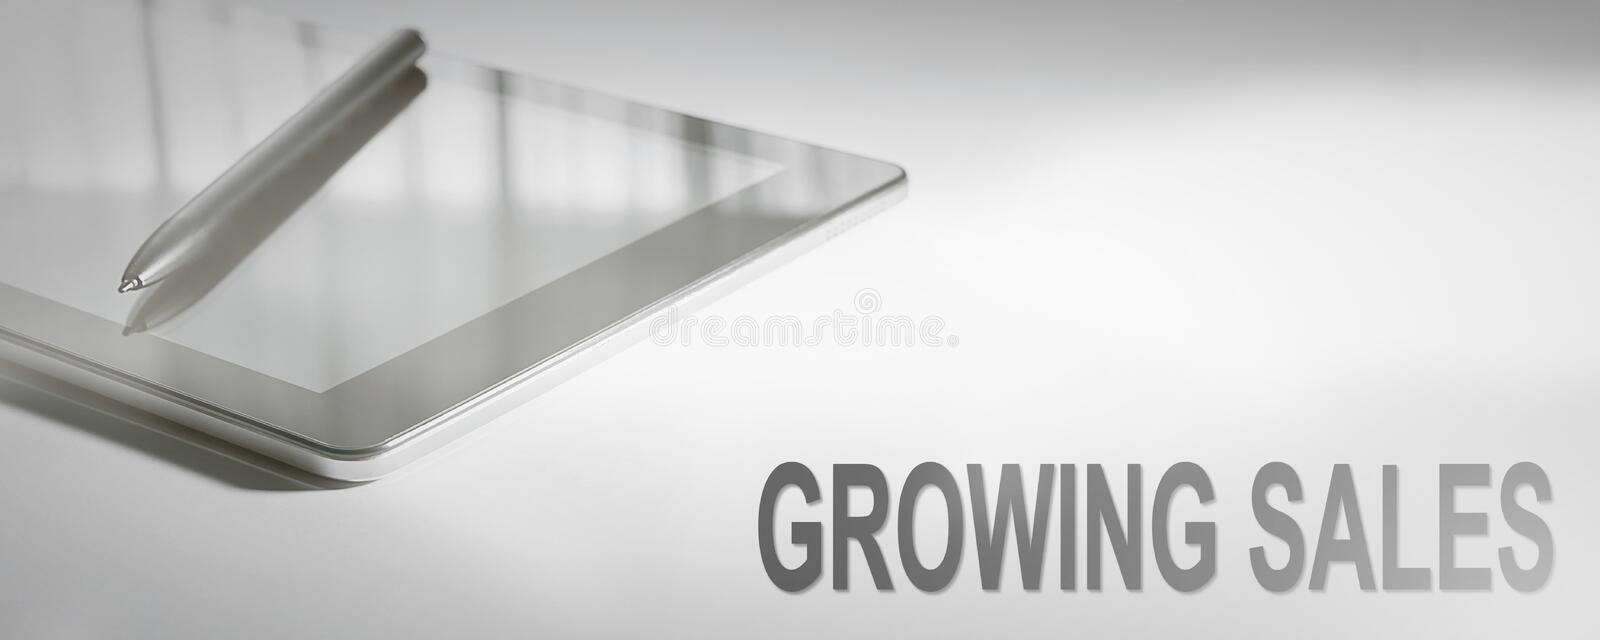 GROWING SALES Business Concept Digital Technology. royalty free stock photography